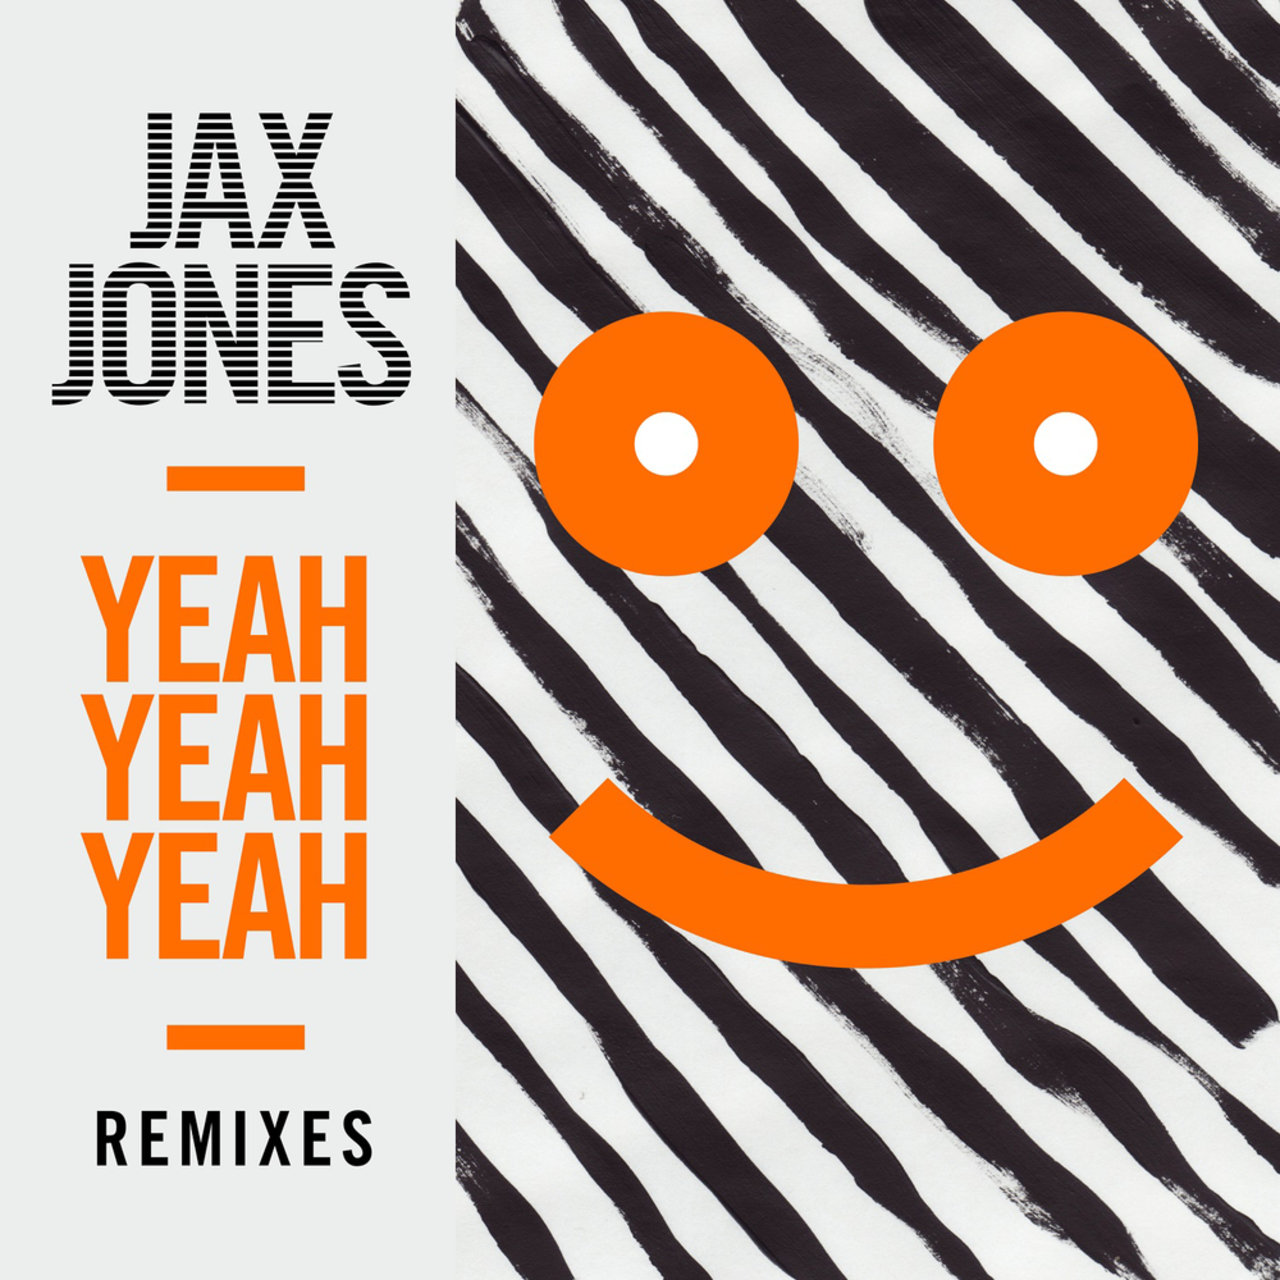 Yeah Yeah Yeah (Remixes)